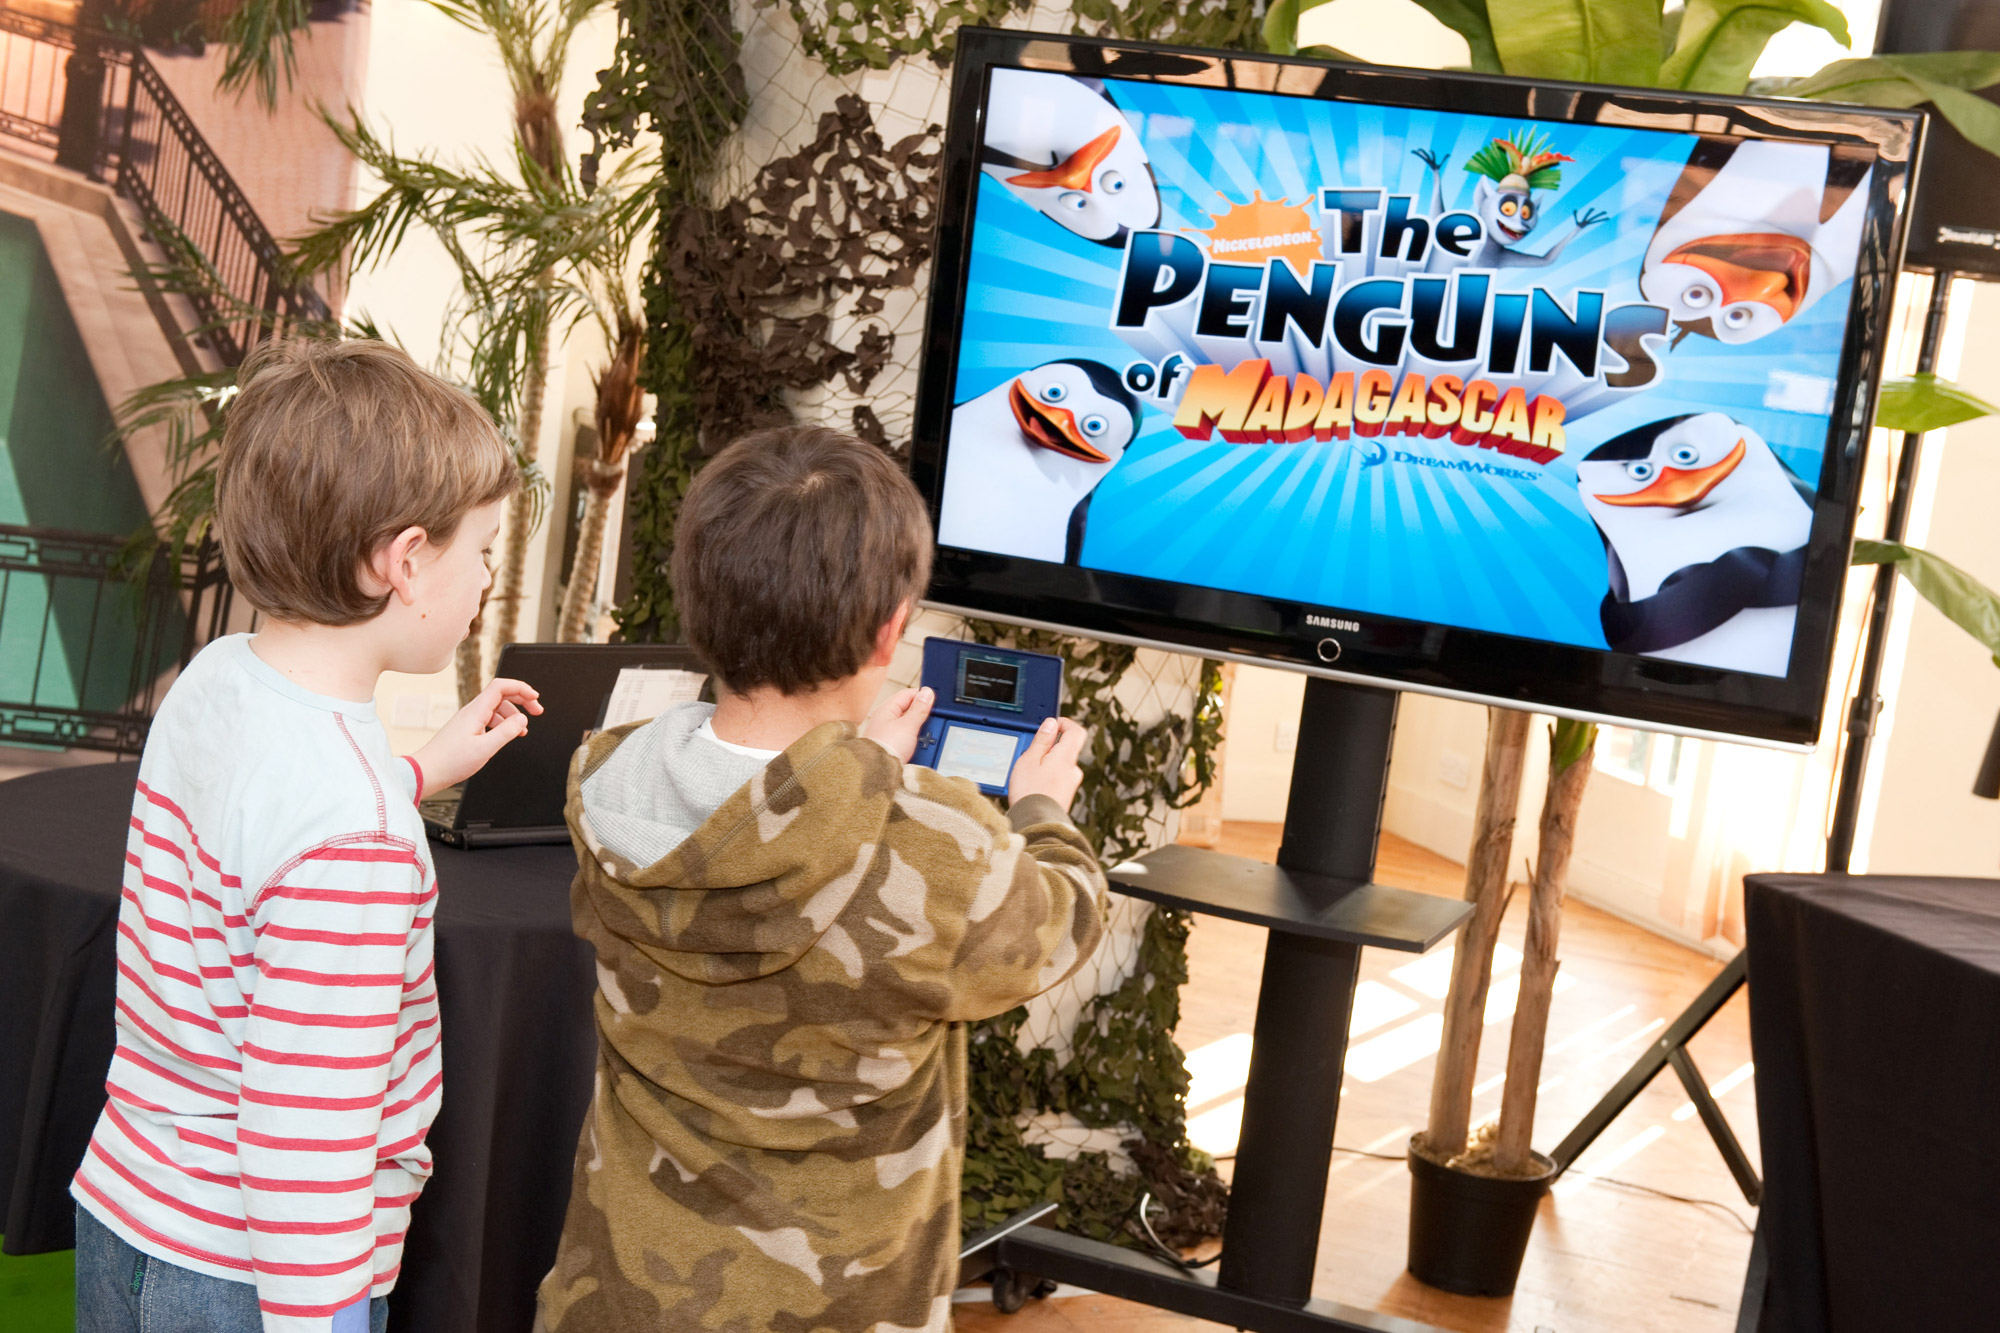 The Penguins of Madagascar launch event for Nickelodeon